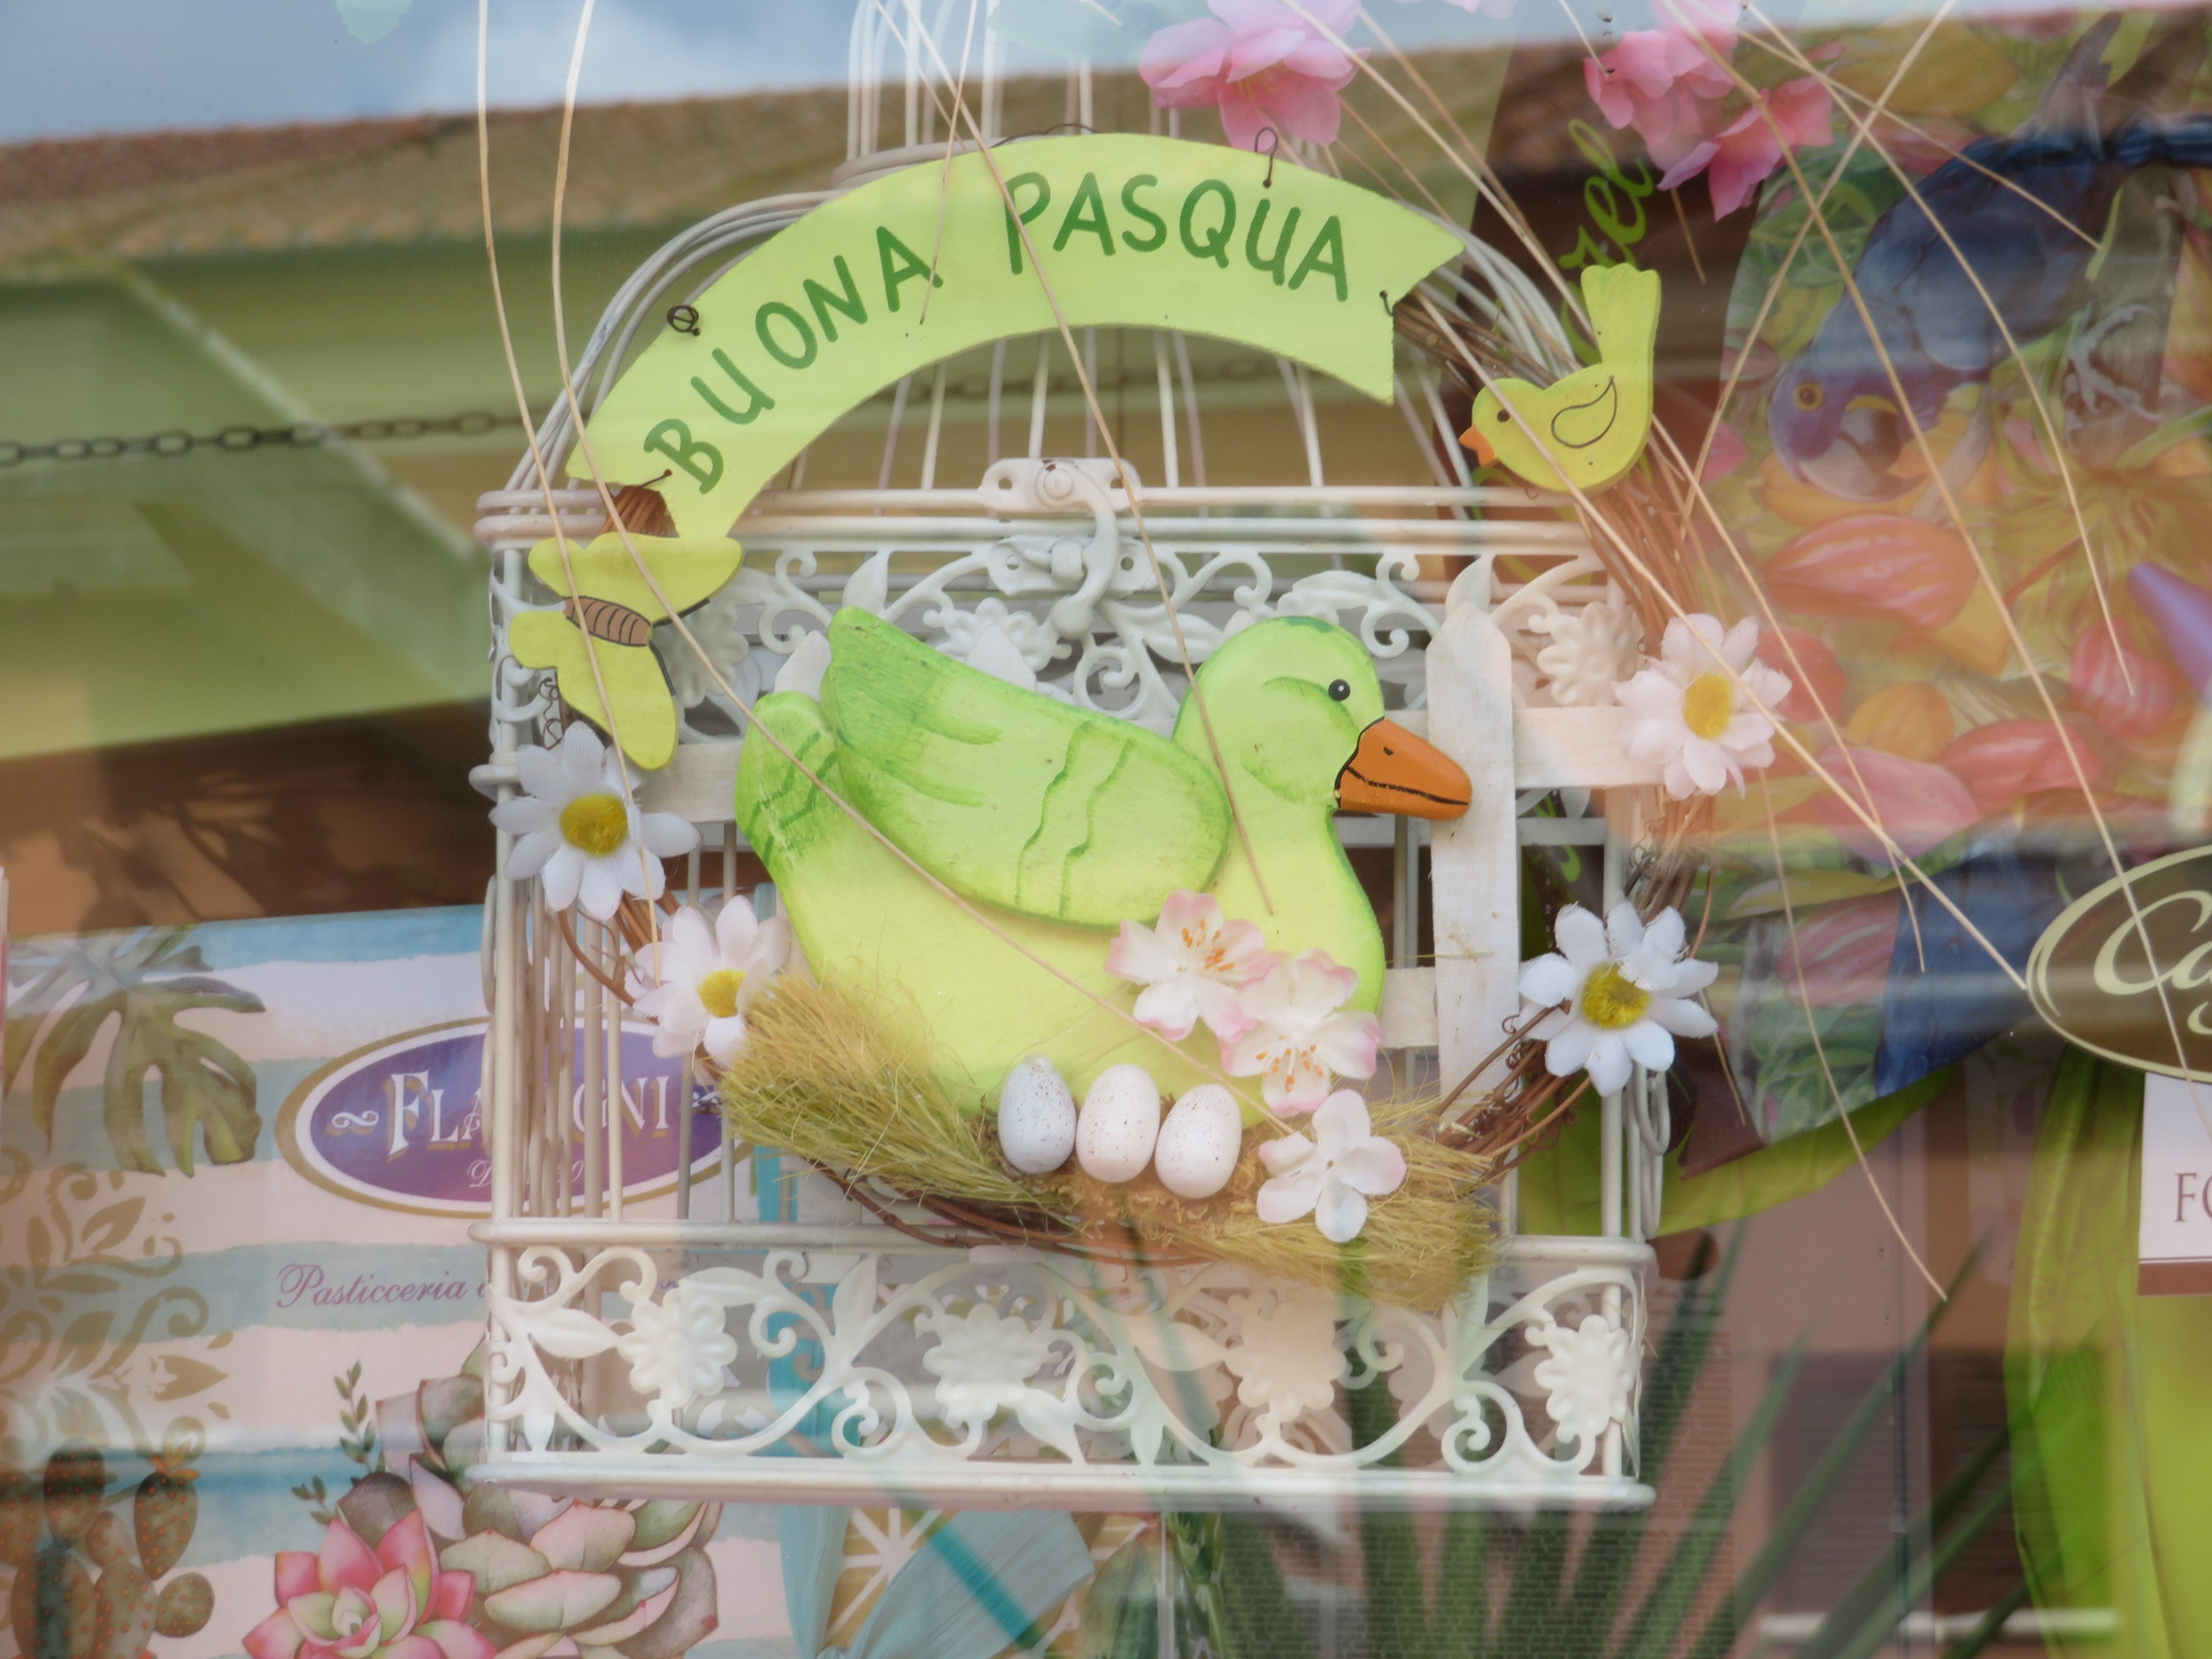 Buona Pasqua-Happy Easter